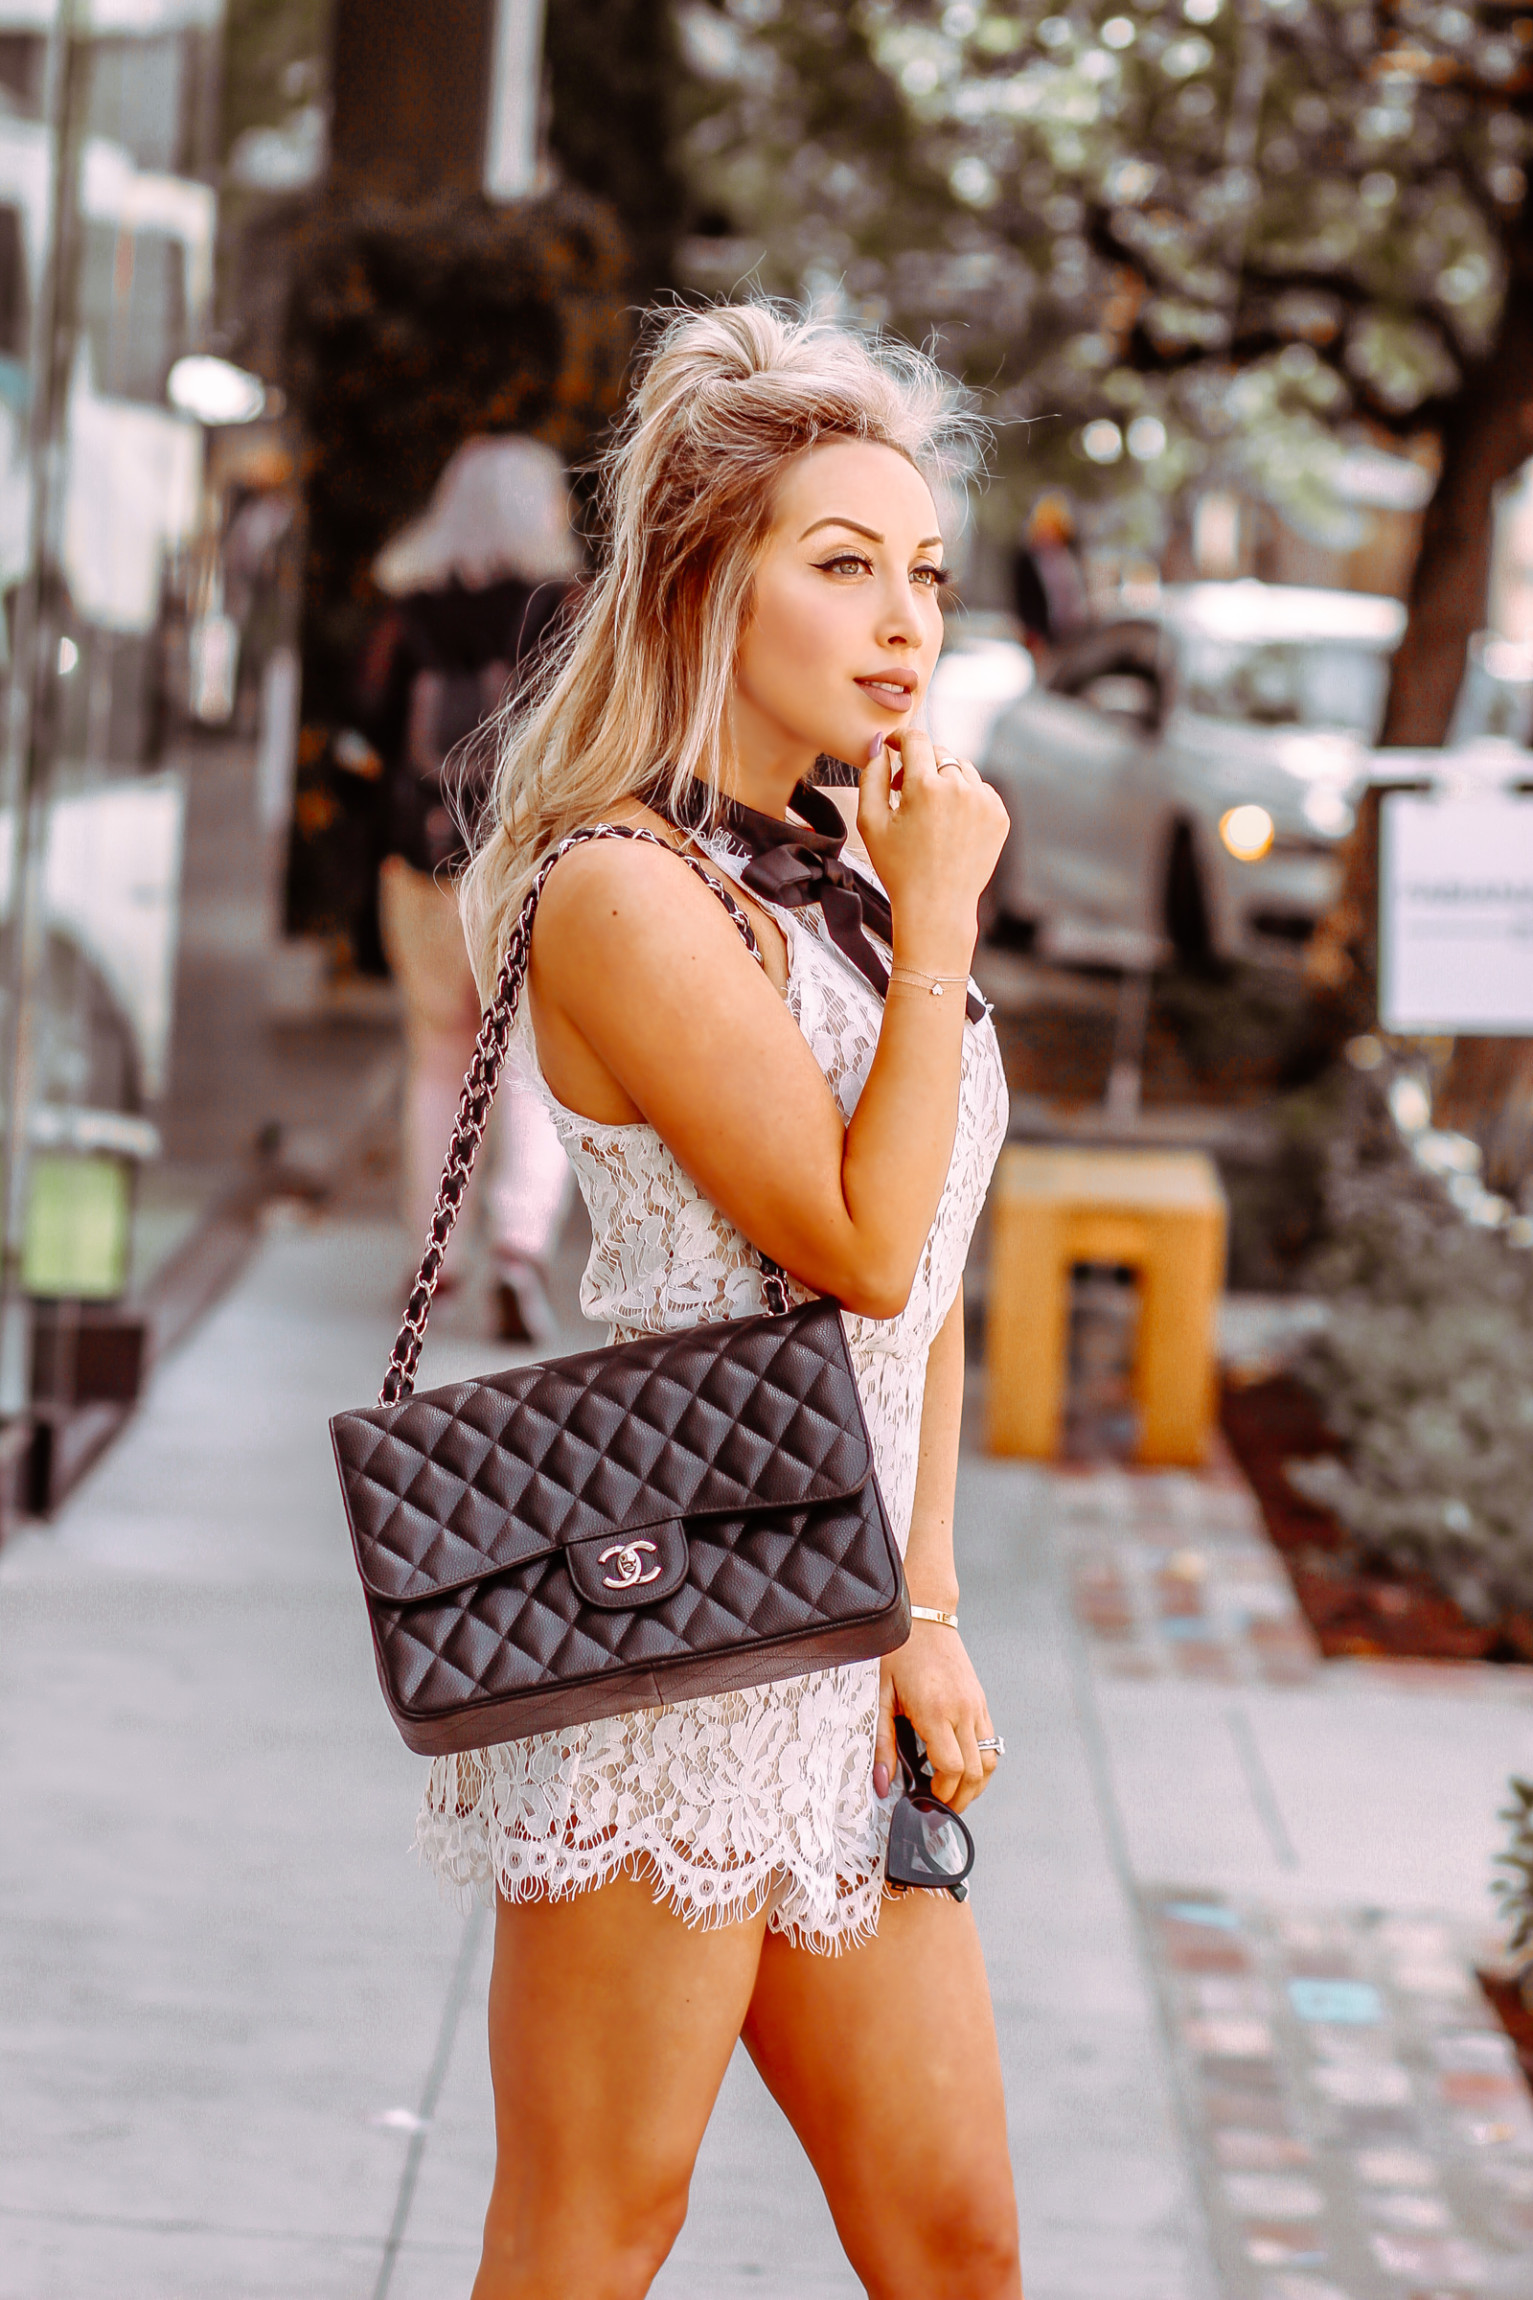 White Lace Romper - Bridal Shower Outfit Inspo - Blondie ...